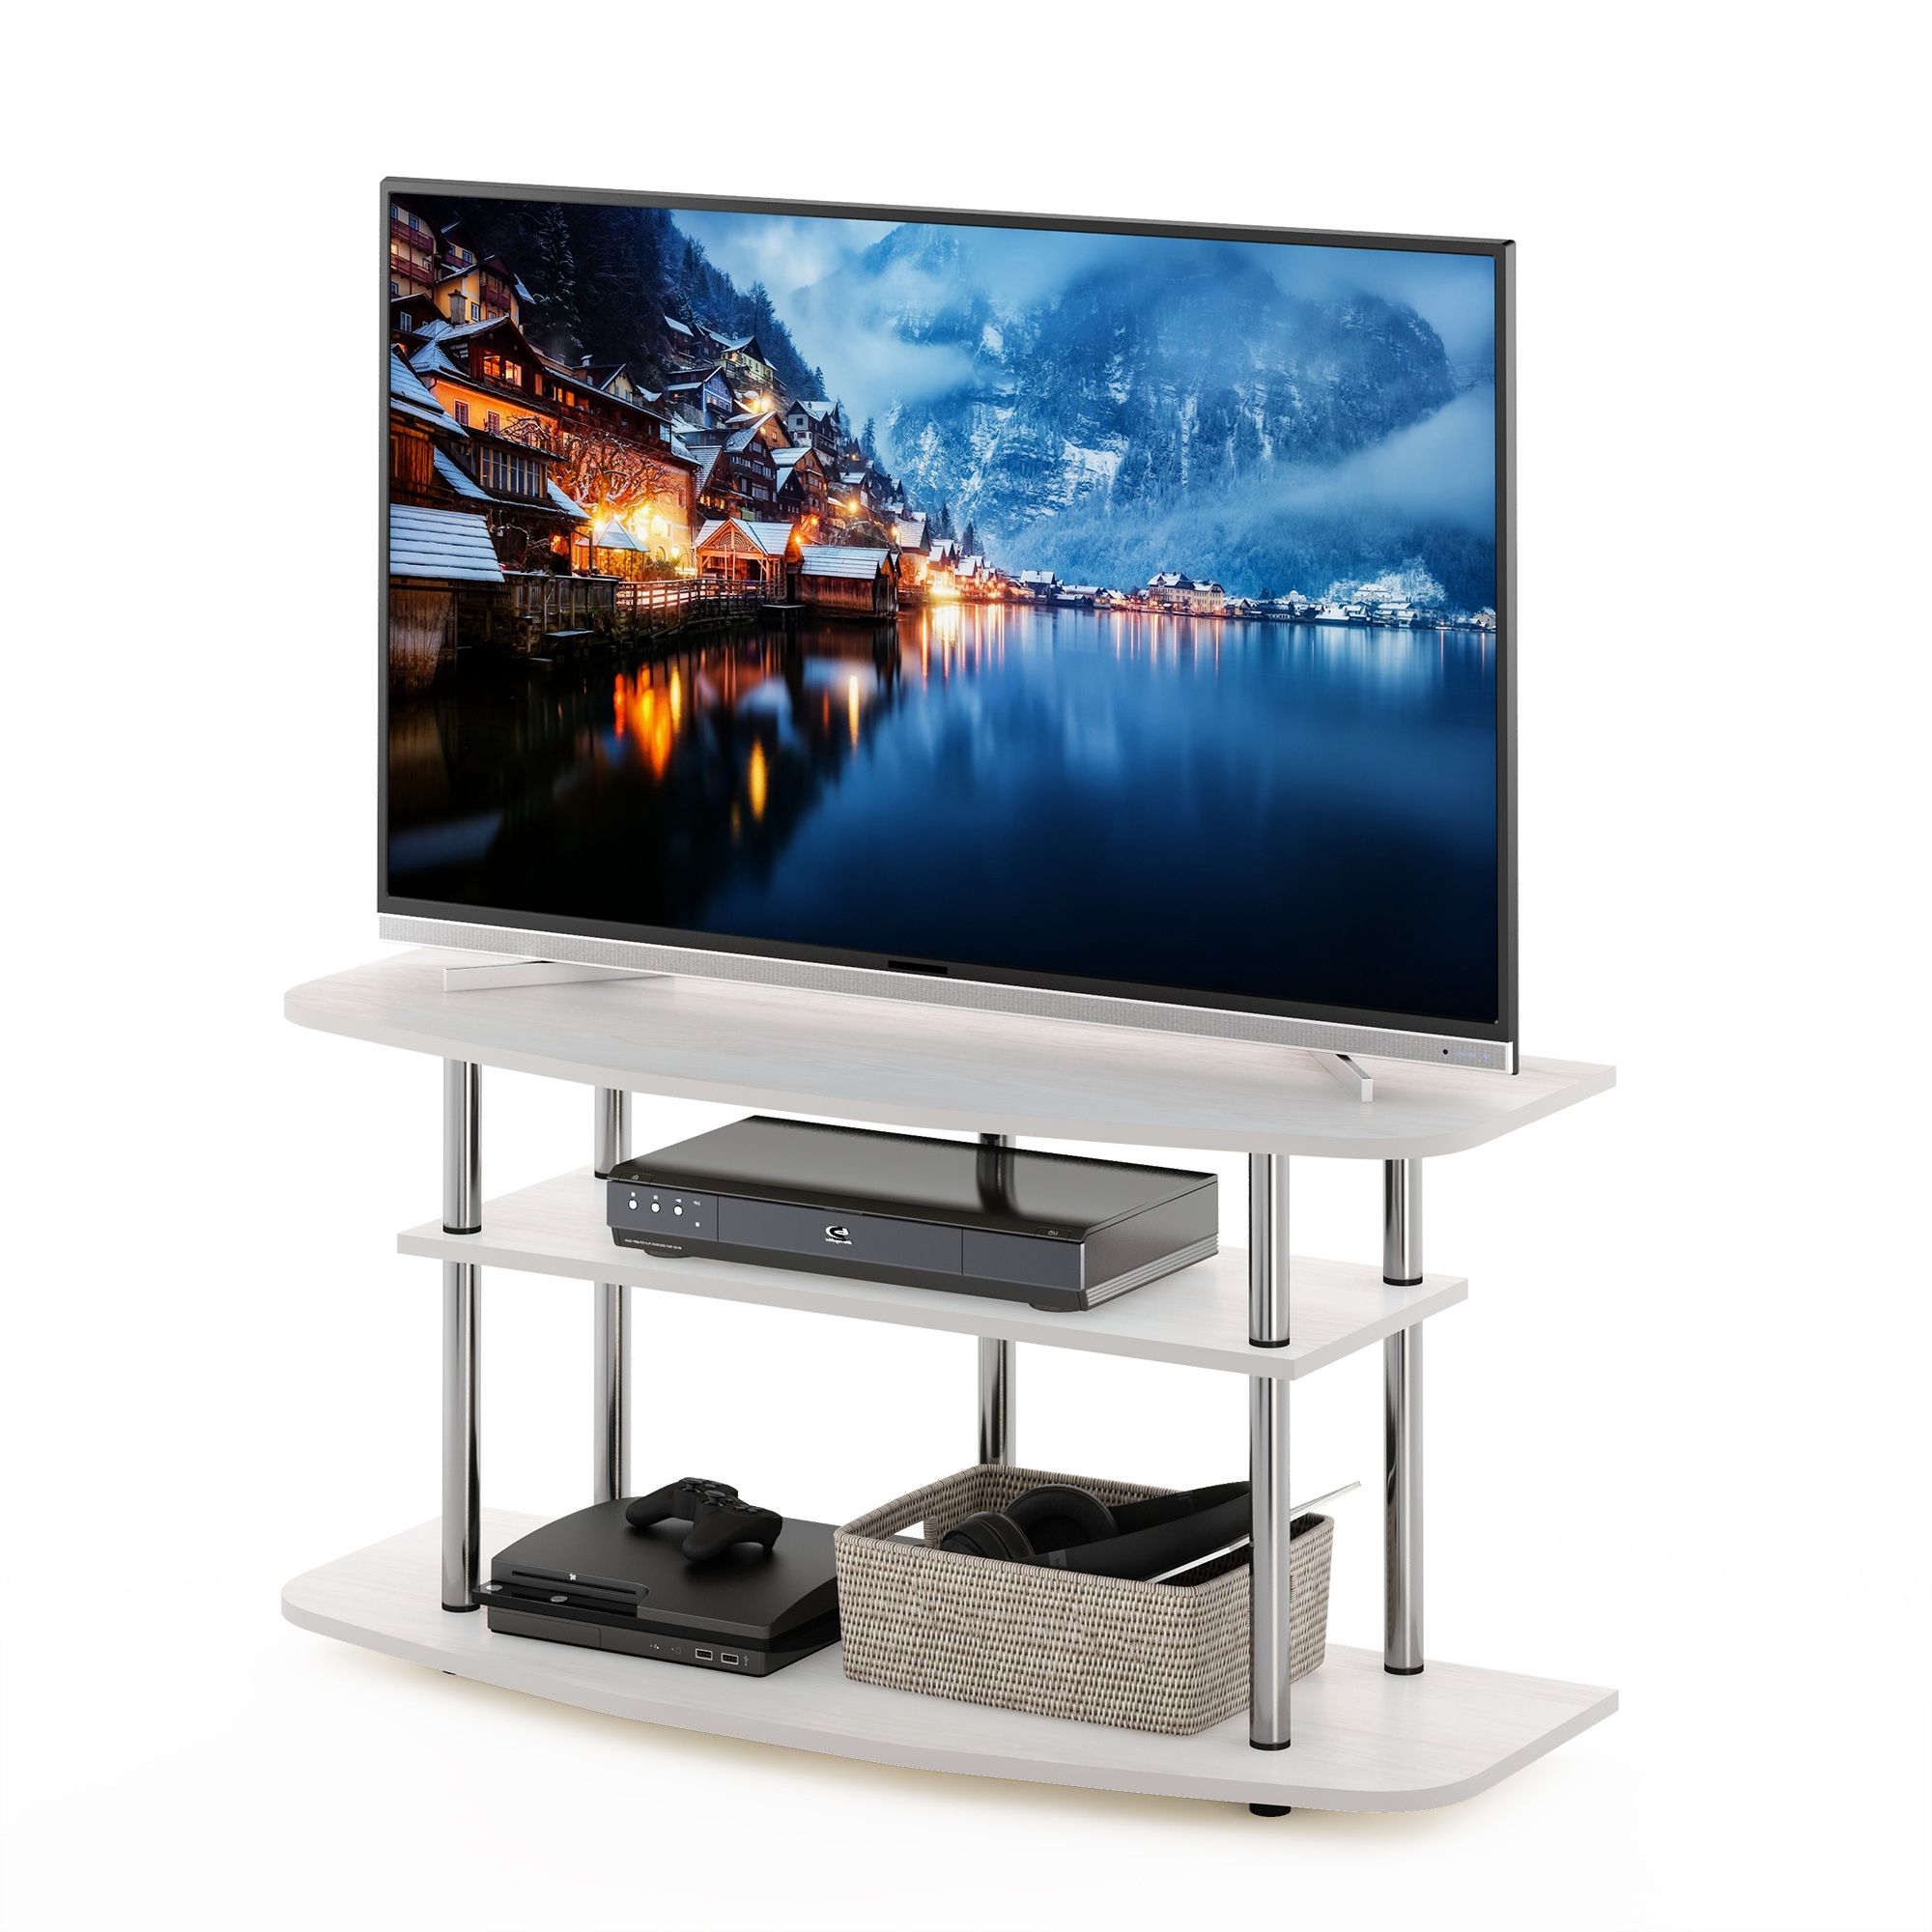 Furinno Frans Turn N Tube 3 Tier Tv Stand For Tv Up To 46 Regarding Furinno Turn N Tube No Tool 3 Tier Entertainment Tv Stands (View 3 of 20)